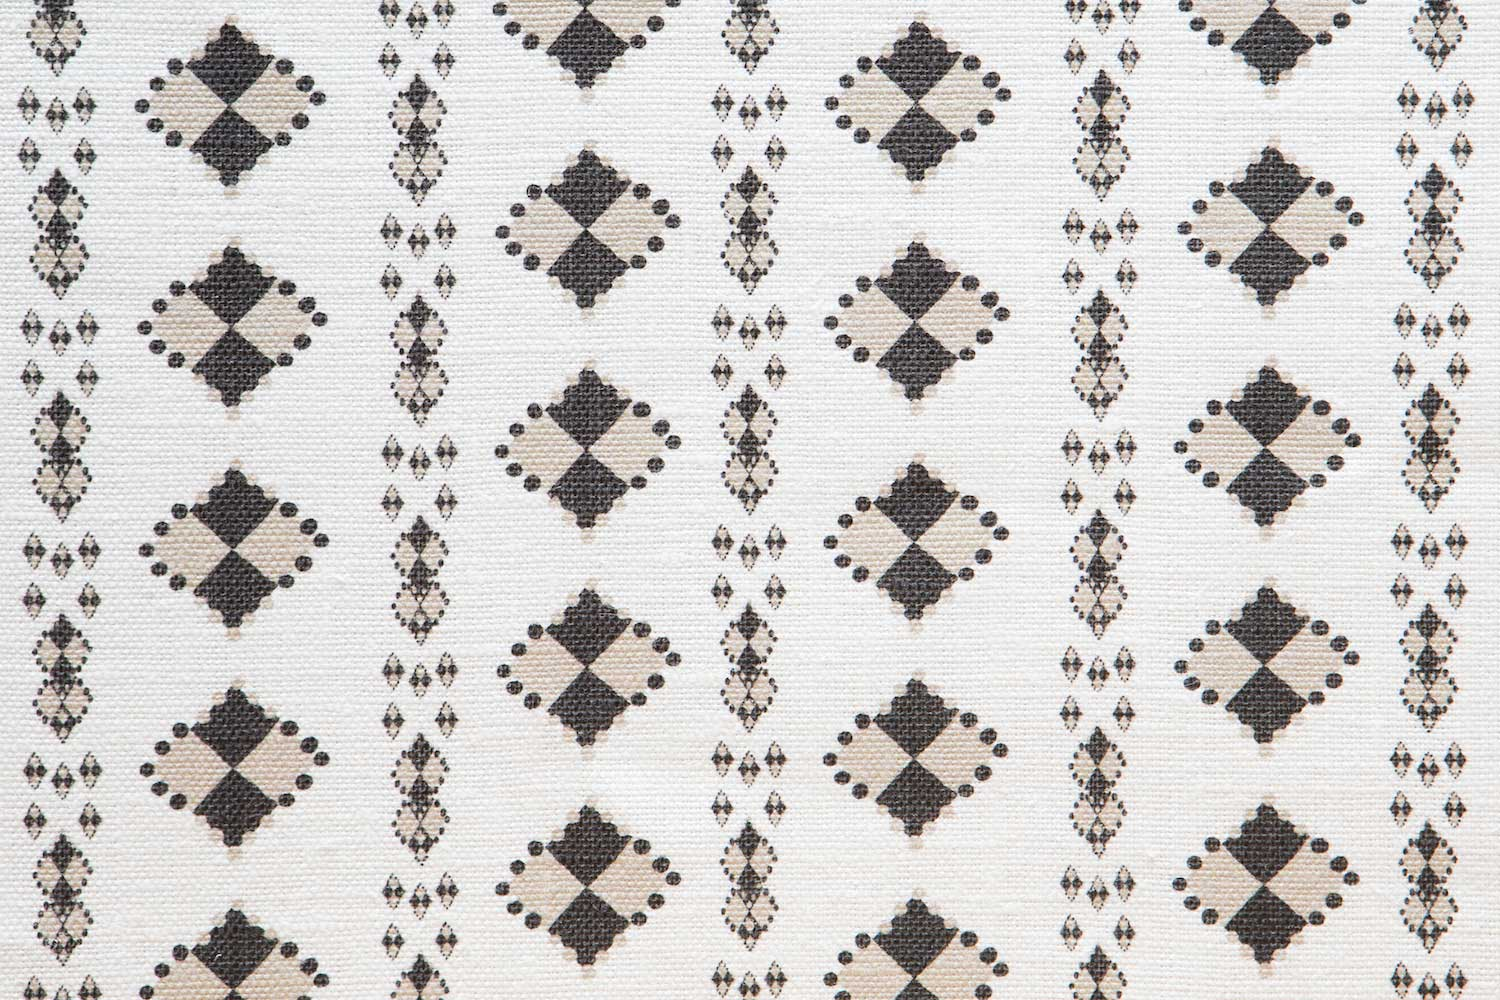 Abbot Atlas karpathos diamond stone fabric linen printed